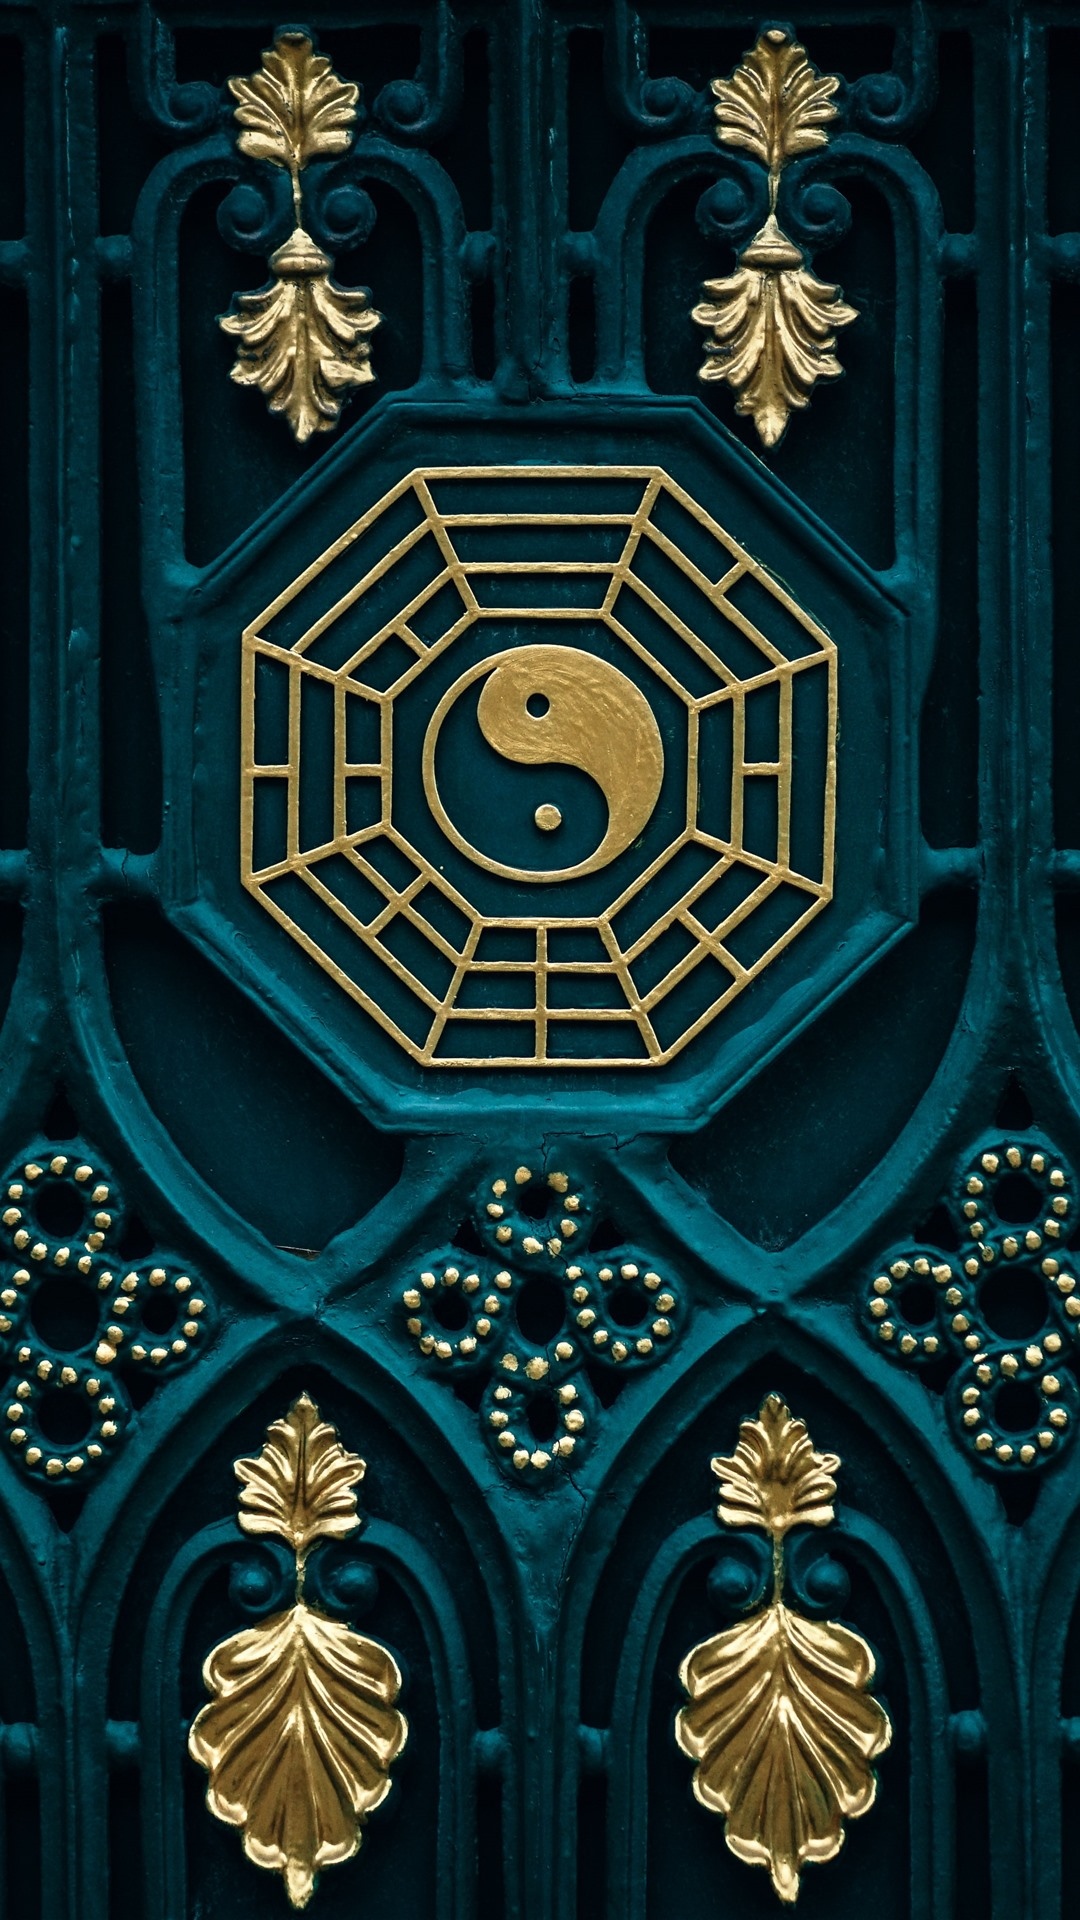 Wallpaper Bagua map yin yang door 5120x2880 UHD 5K Picture Image 1080x1920